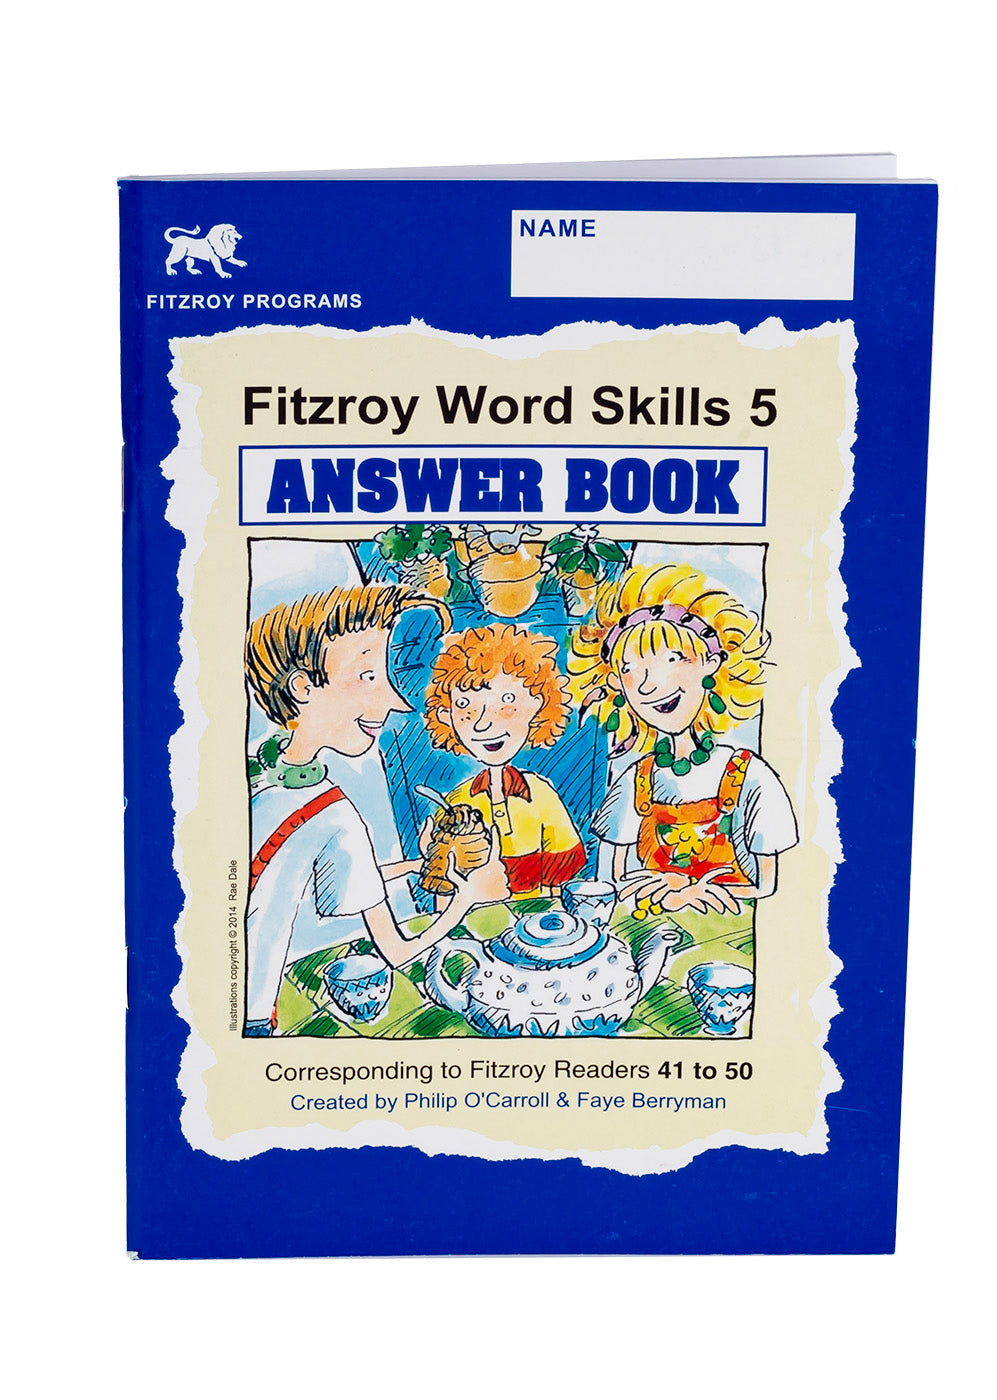 Fitzroy Word Skills Answer Book 5